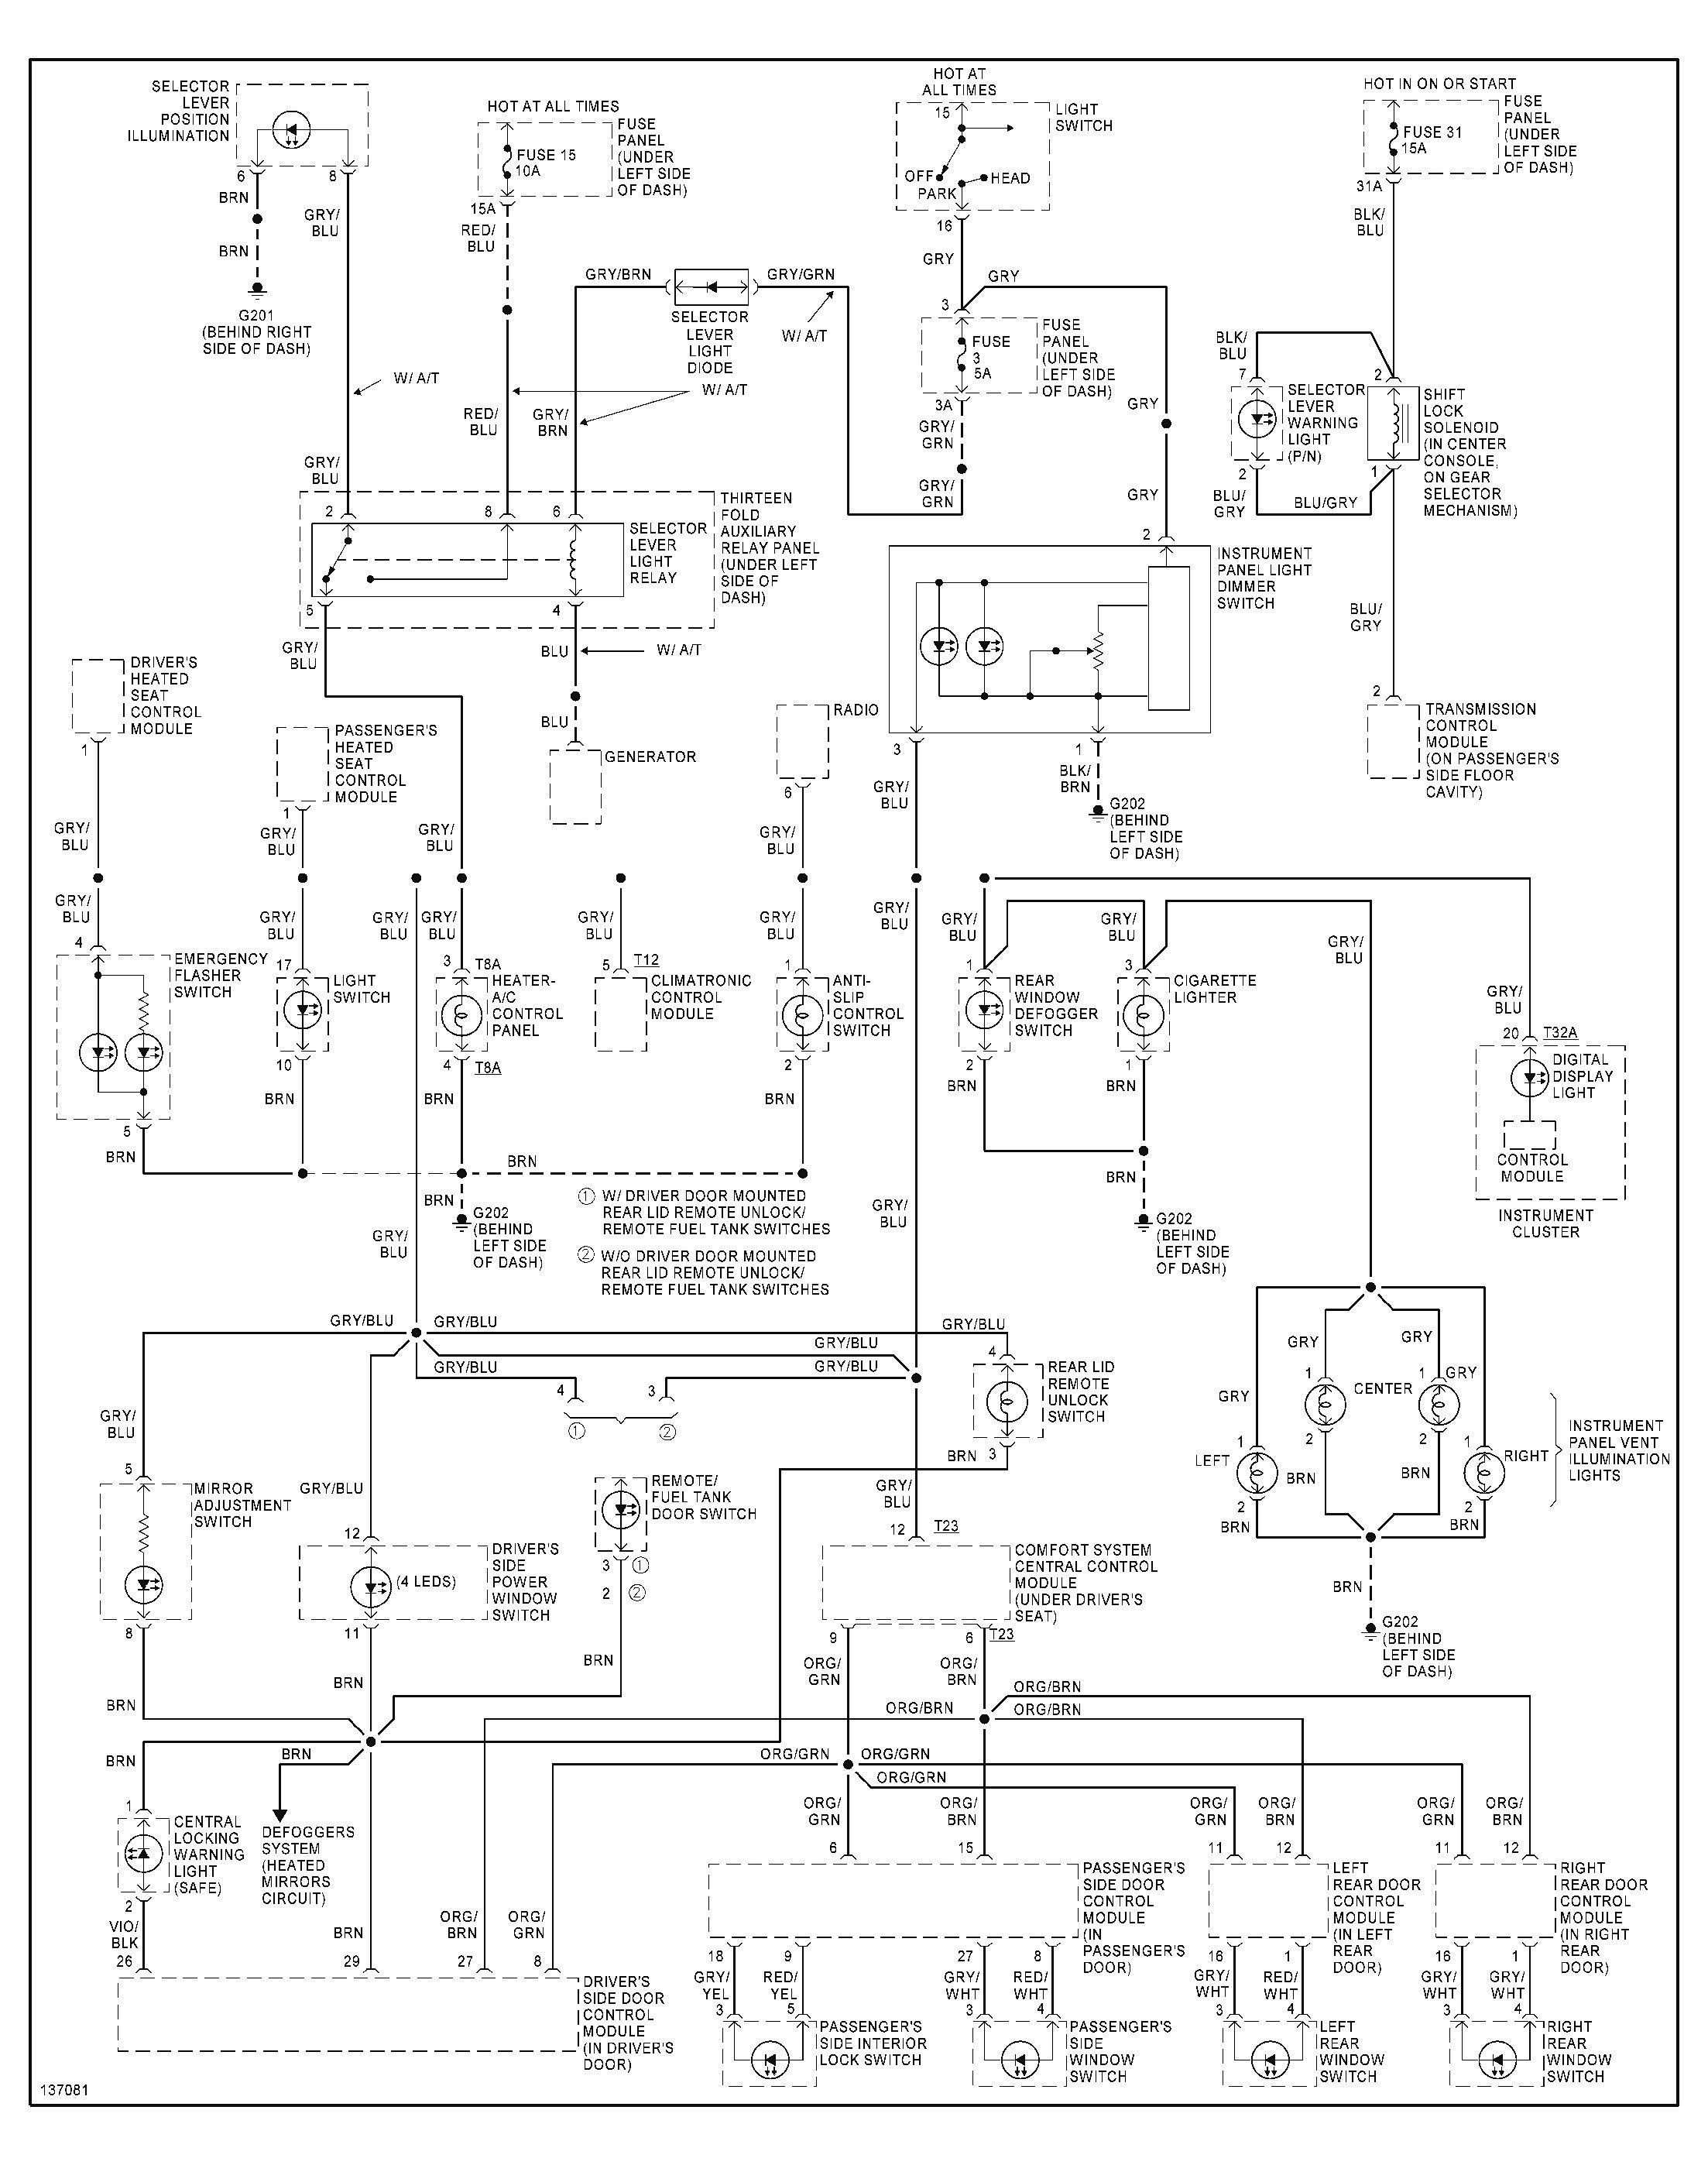 Diagram Jeep Grand Cherokee 2004 Wiring Diagram Full Version Hd Quality Wiring Diagram Dhdiagram Adimstore It